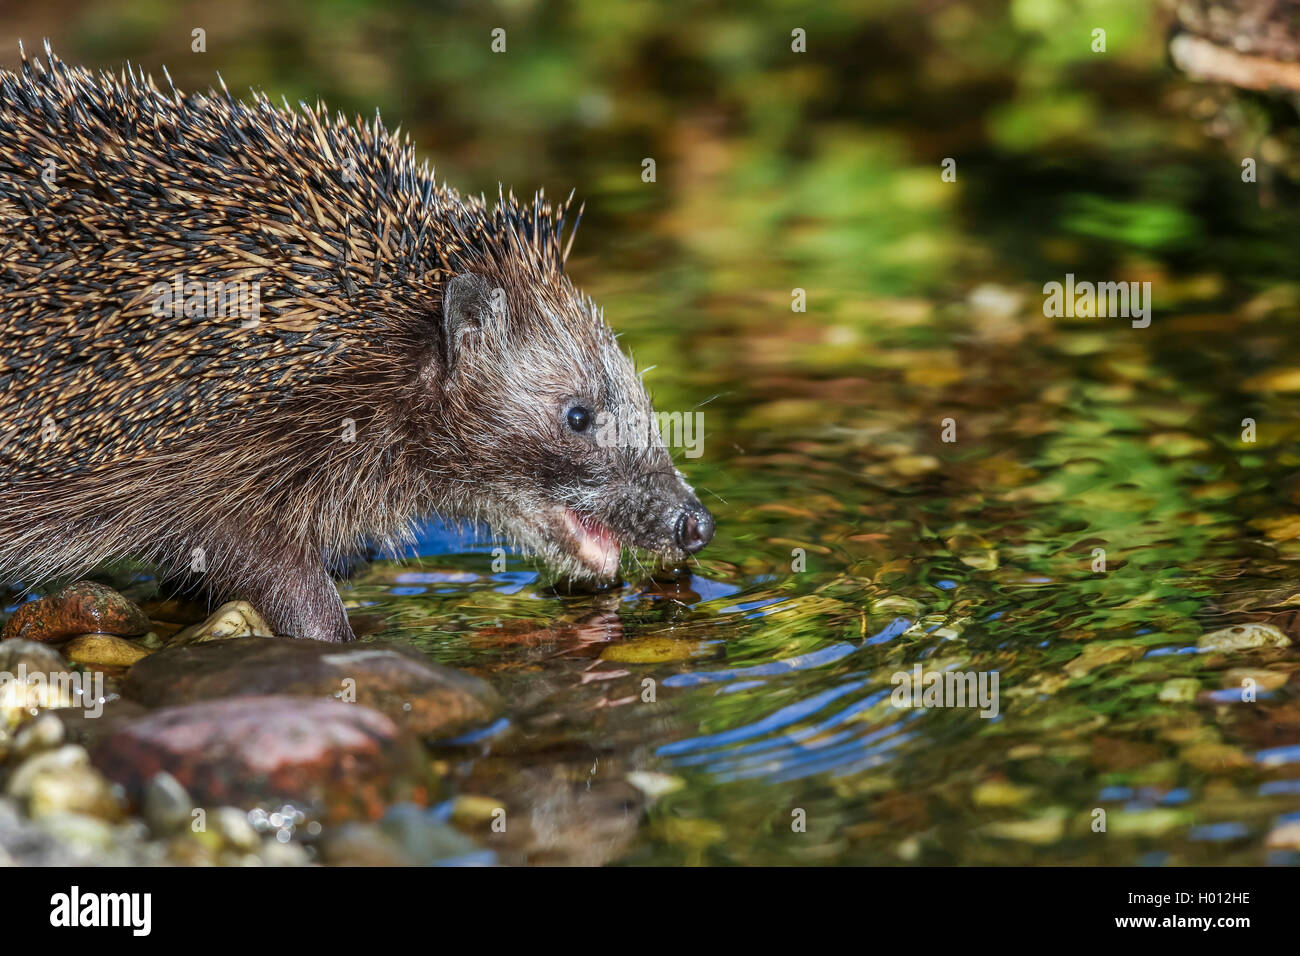 Igel Garten Stock Photos & Igel Garten Stock Images - Alamy